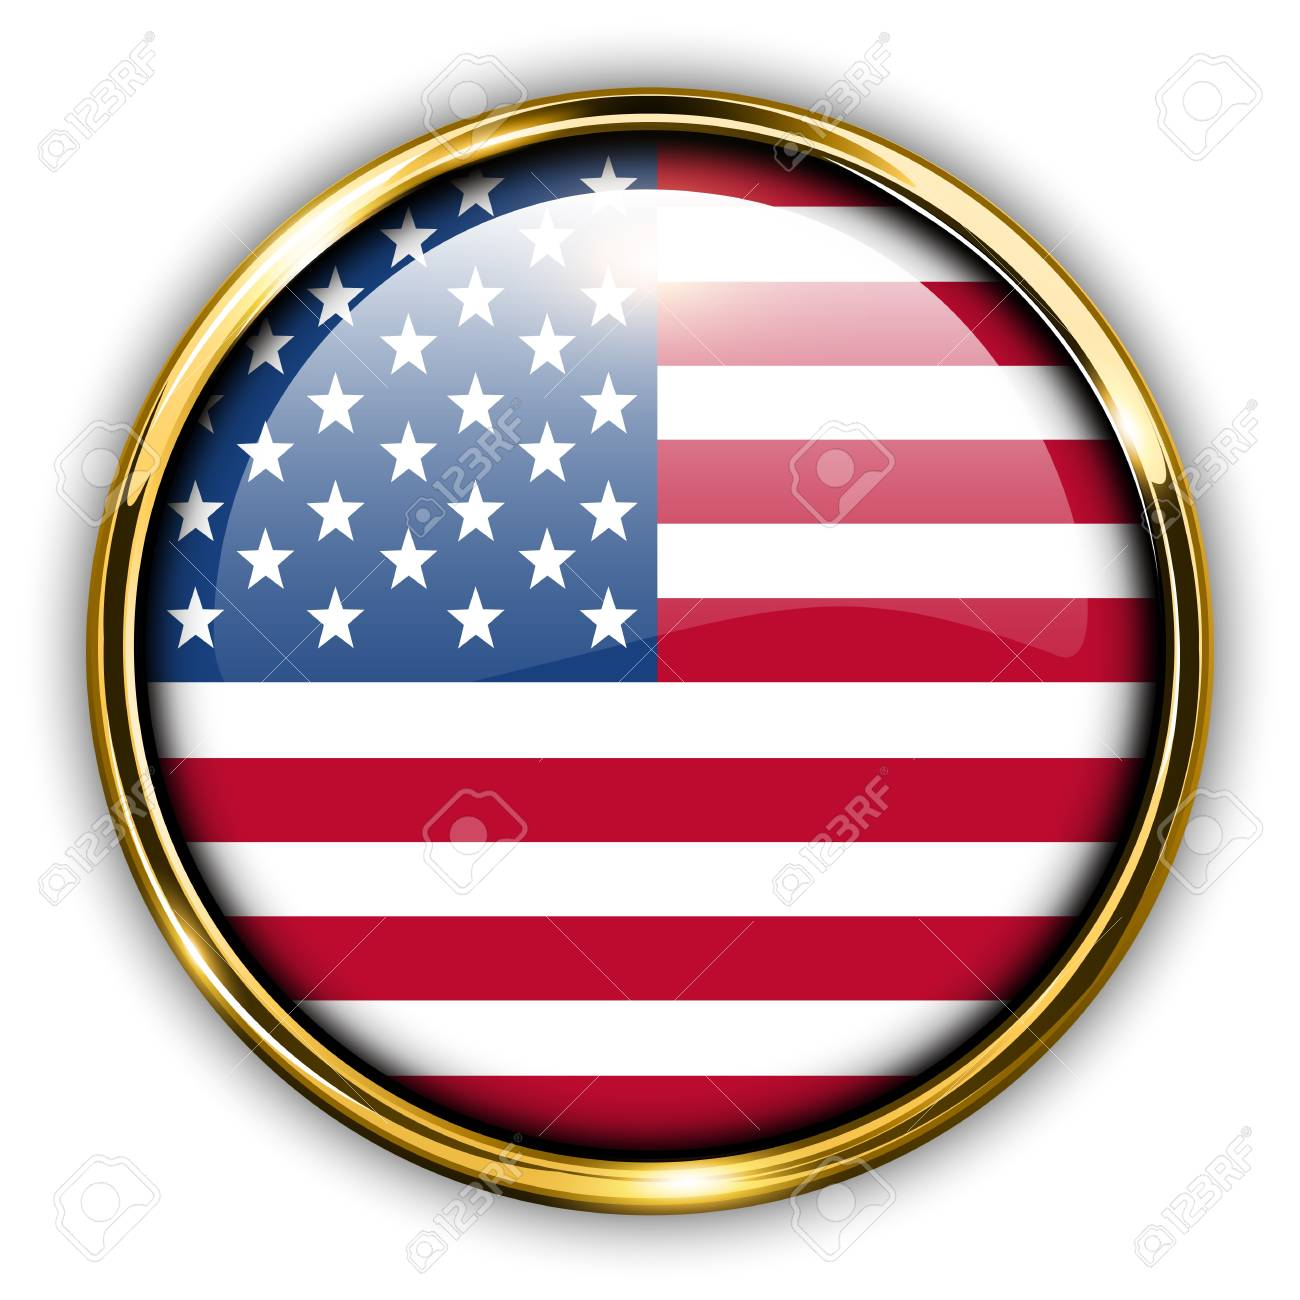 USA, United States America flag button, vector. Stock Vector - 21734579